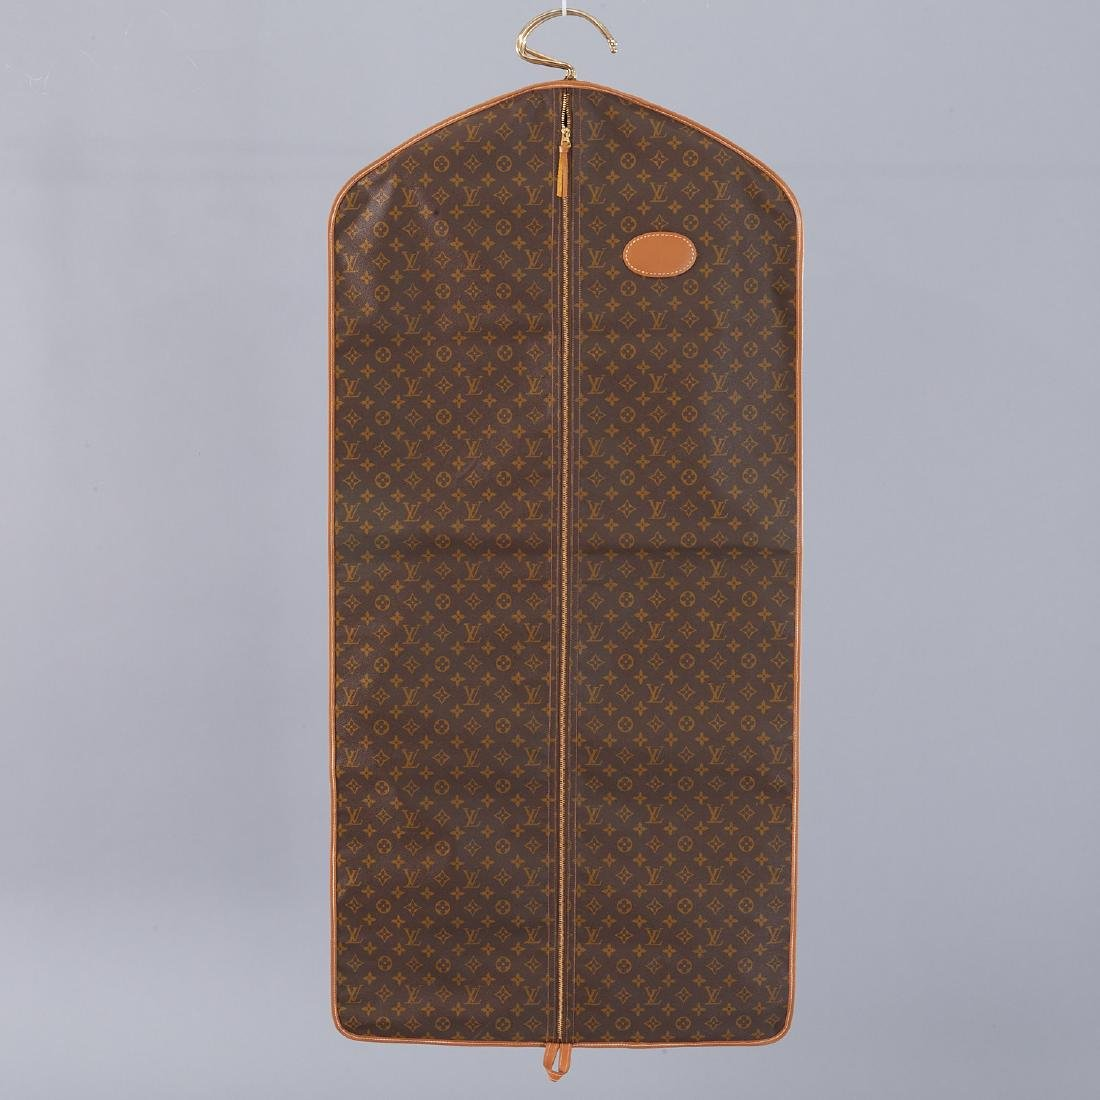 Louis Vuitton Monogram garment bag